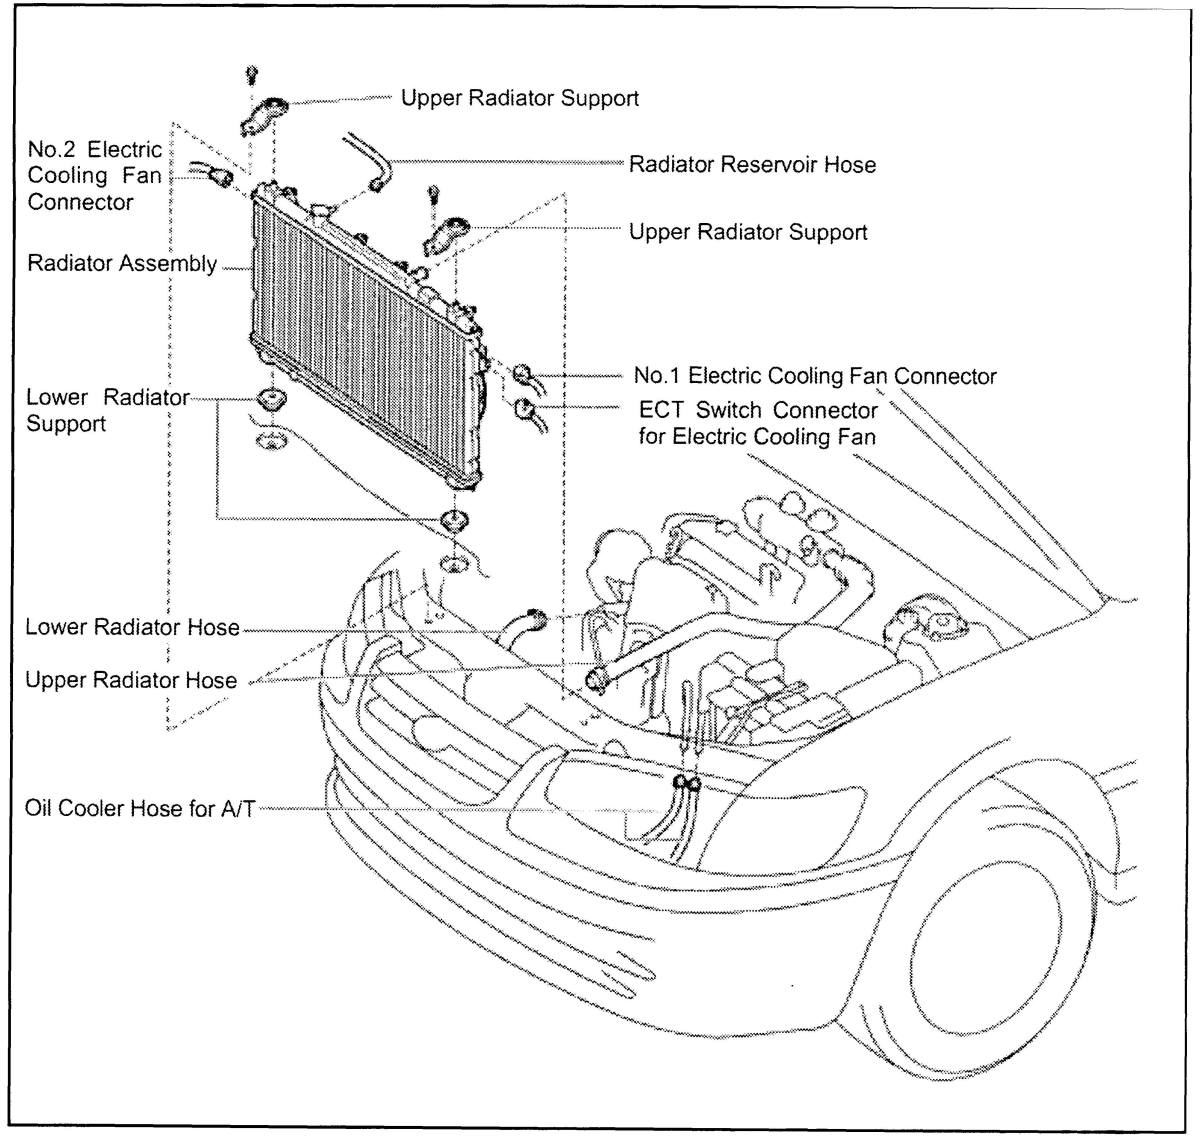 Toyota Camry Radiator Replacement further Solar Panel Cable further 2010 F150 Air Conditioner Schematic also Bmw Electronic Parts Catalog as well 2000 Toyota Sienna Engine Diagram. on toyota sequoia fuel pump location